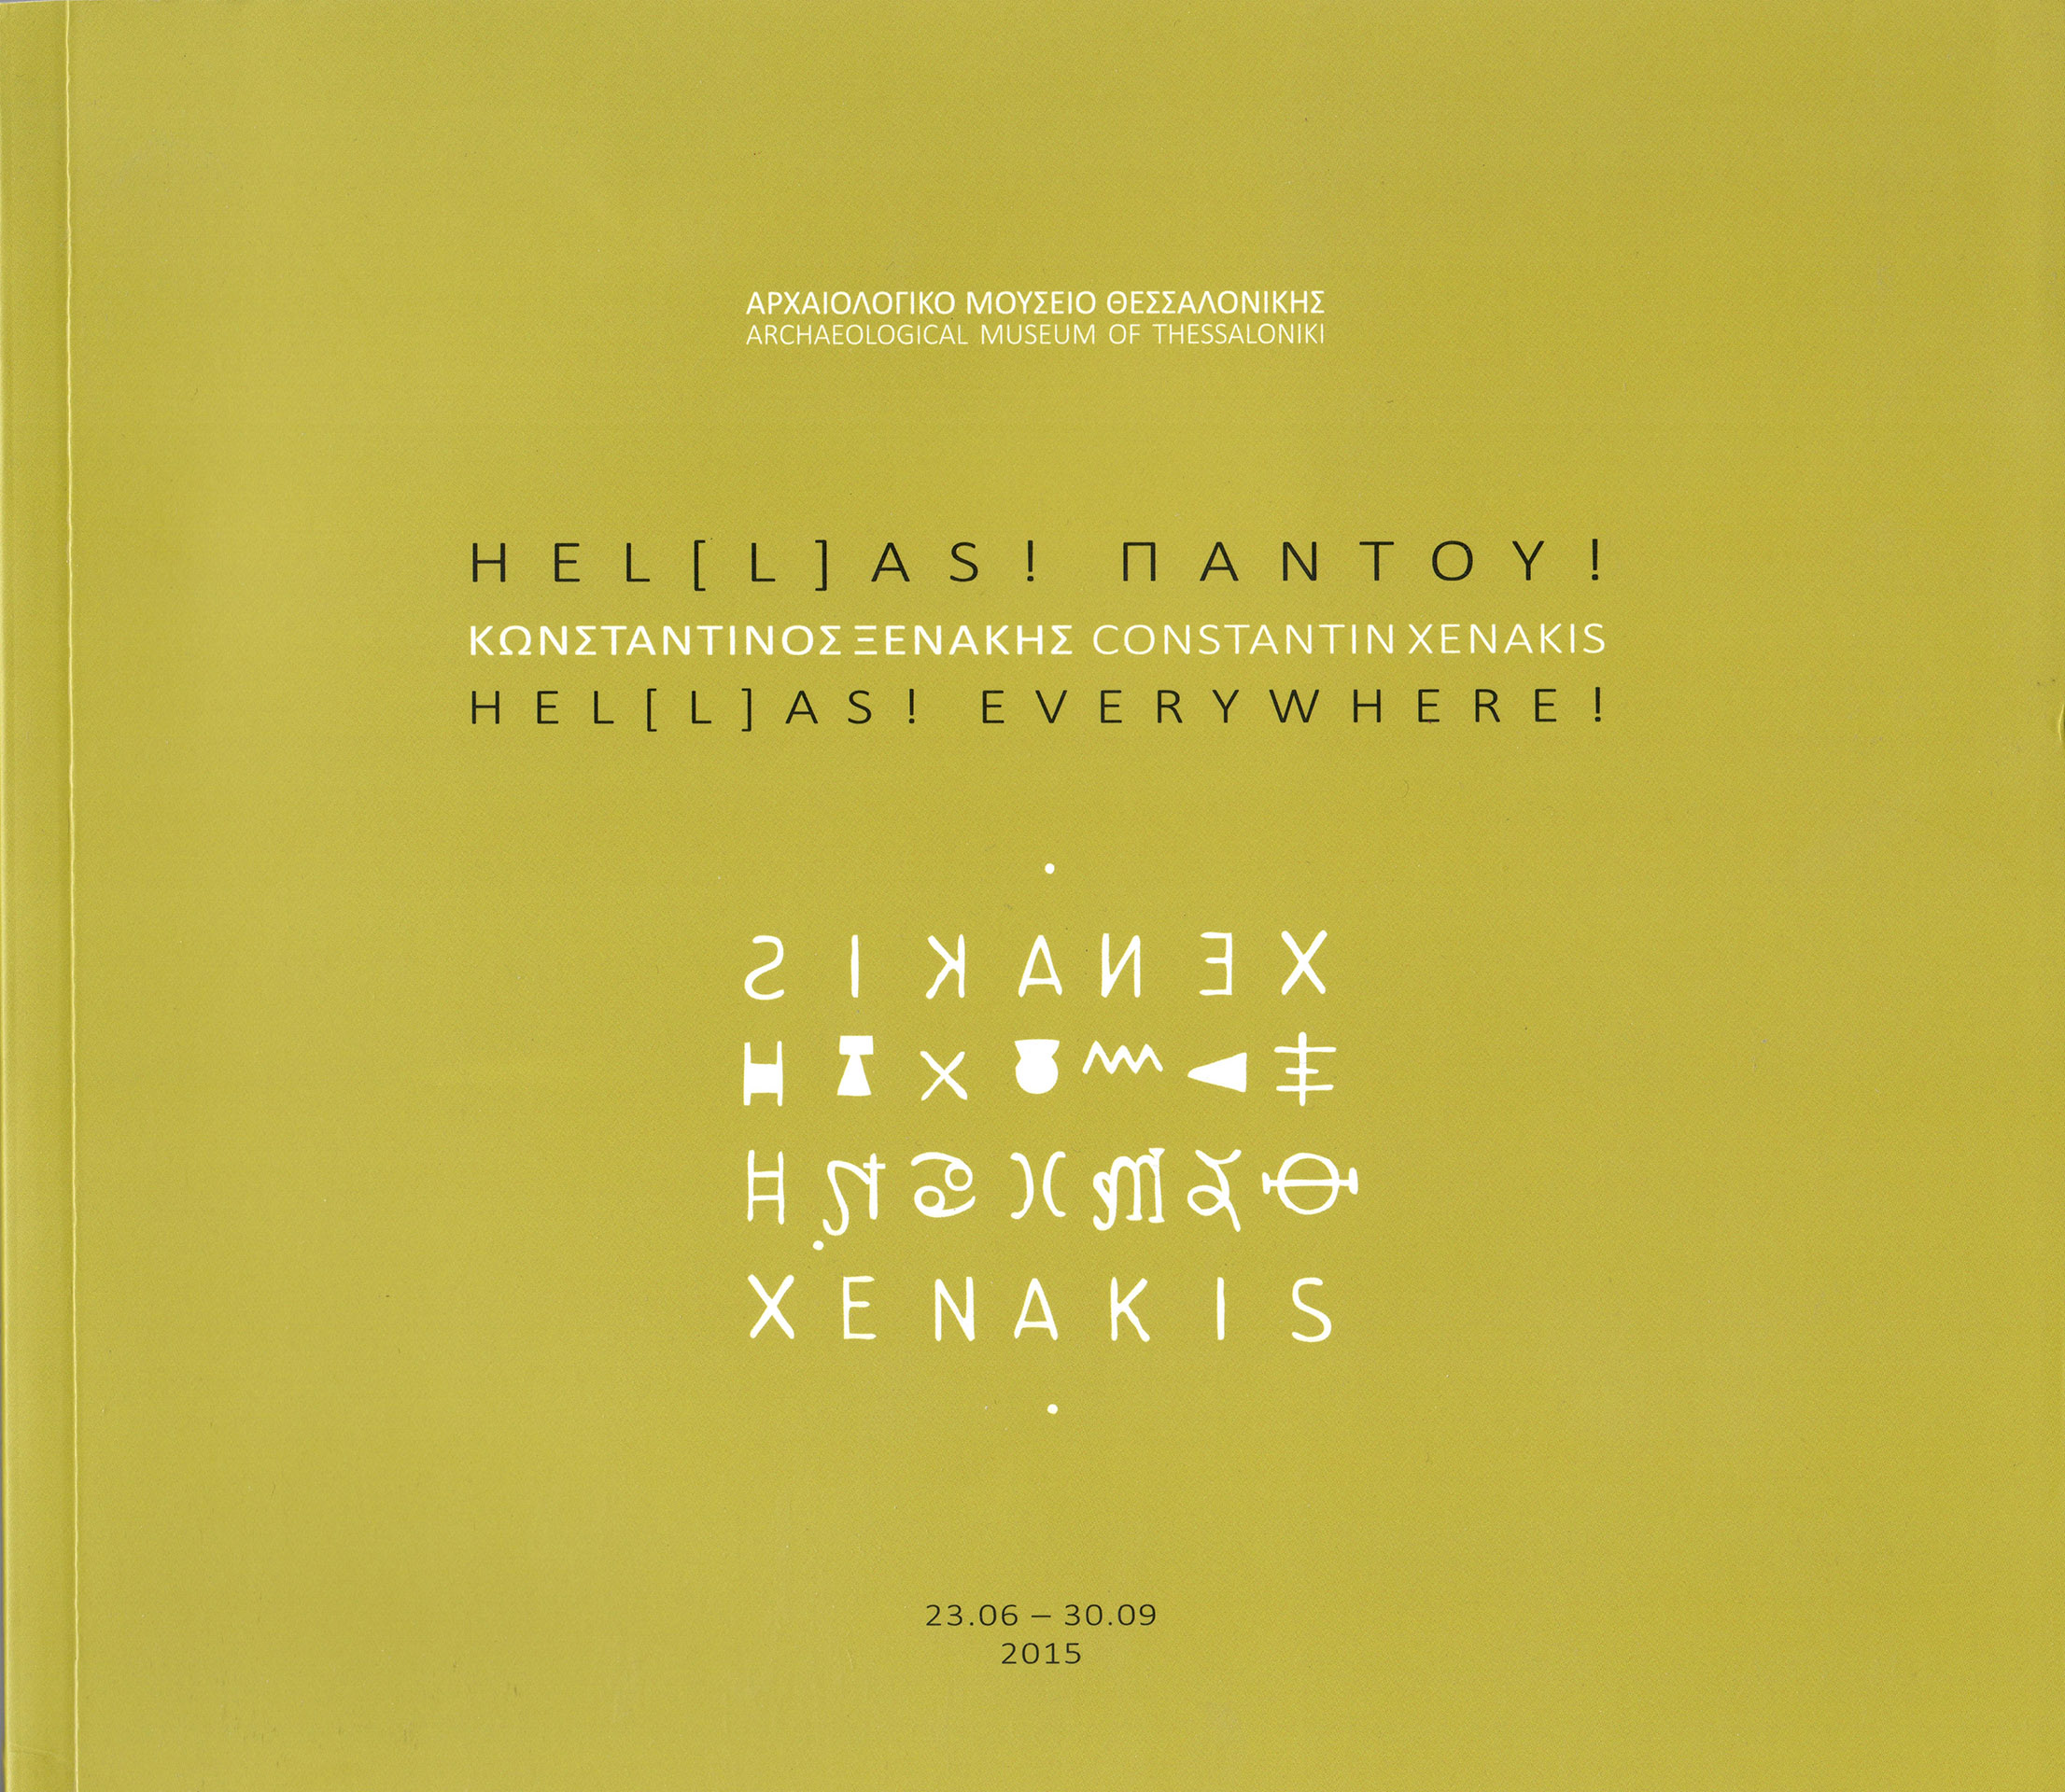 1. CONSTANTIN XANAKIS - HELLAS EVERYWHERE - THESSALONIKI[2015]